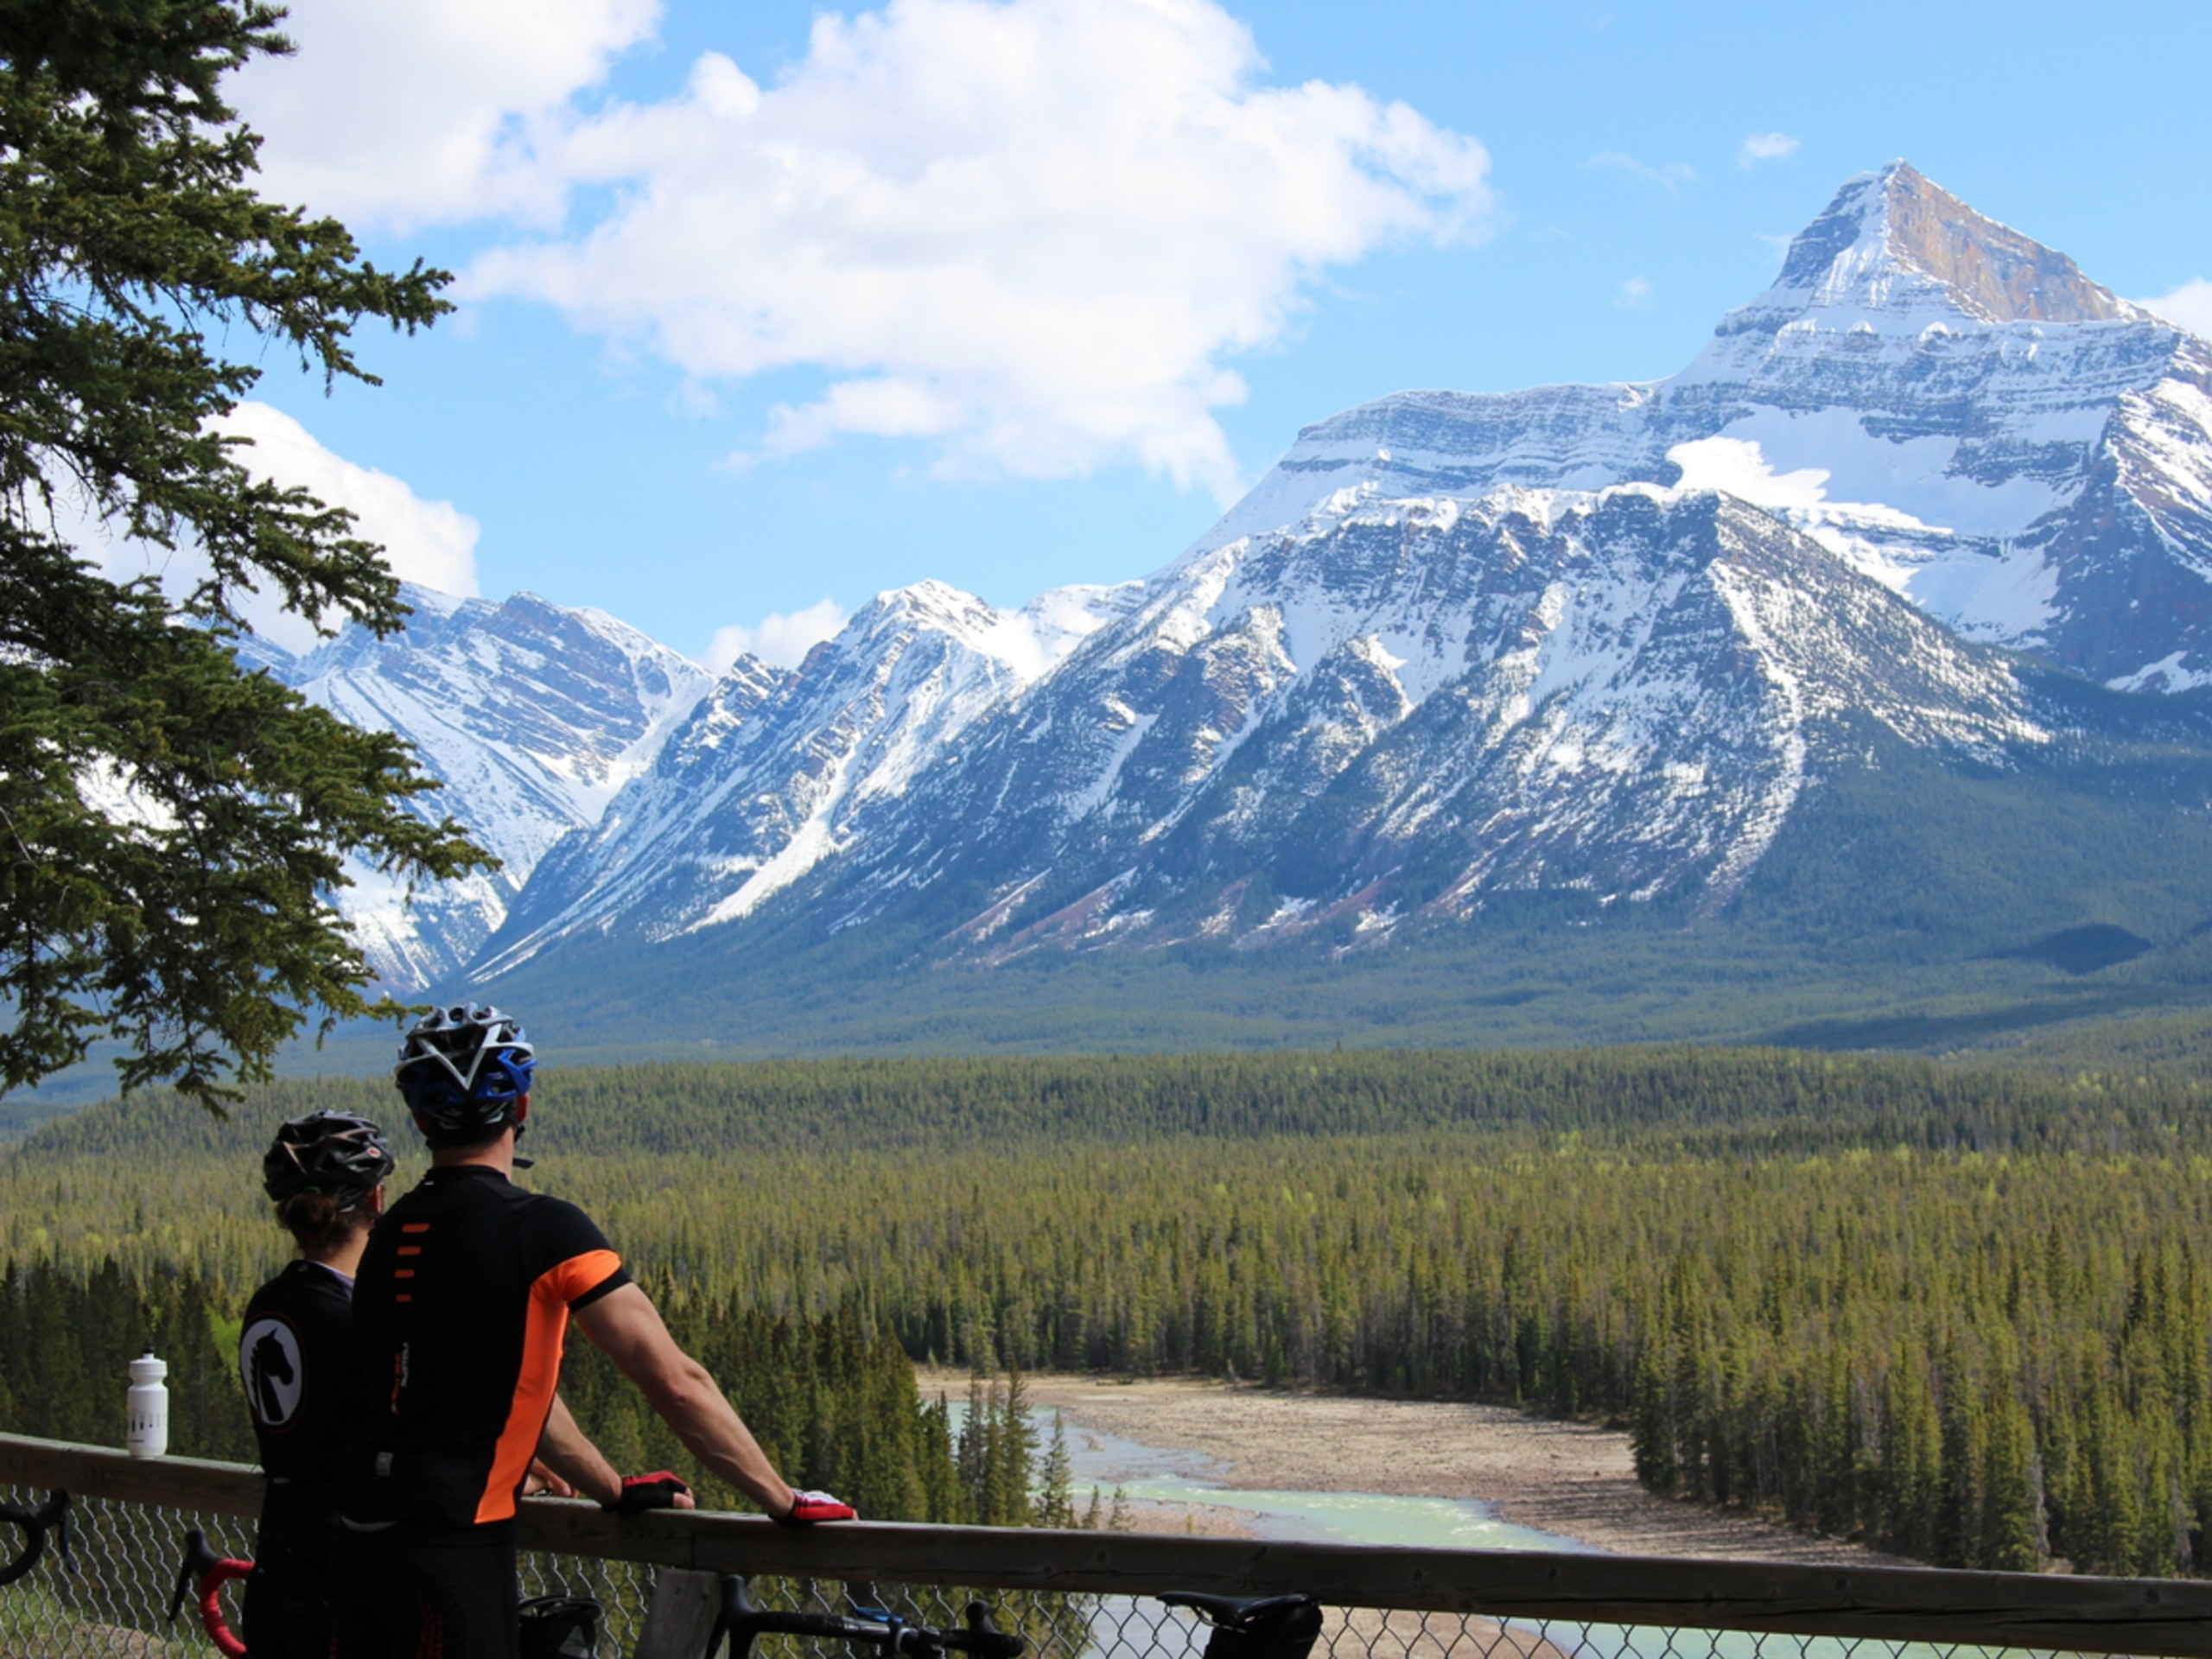 Two bikers observing the beautiful views of the Alberta wilderness